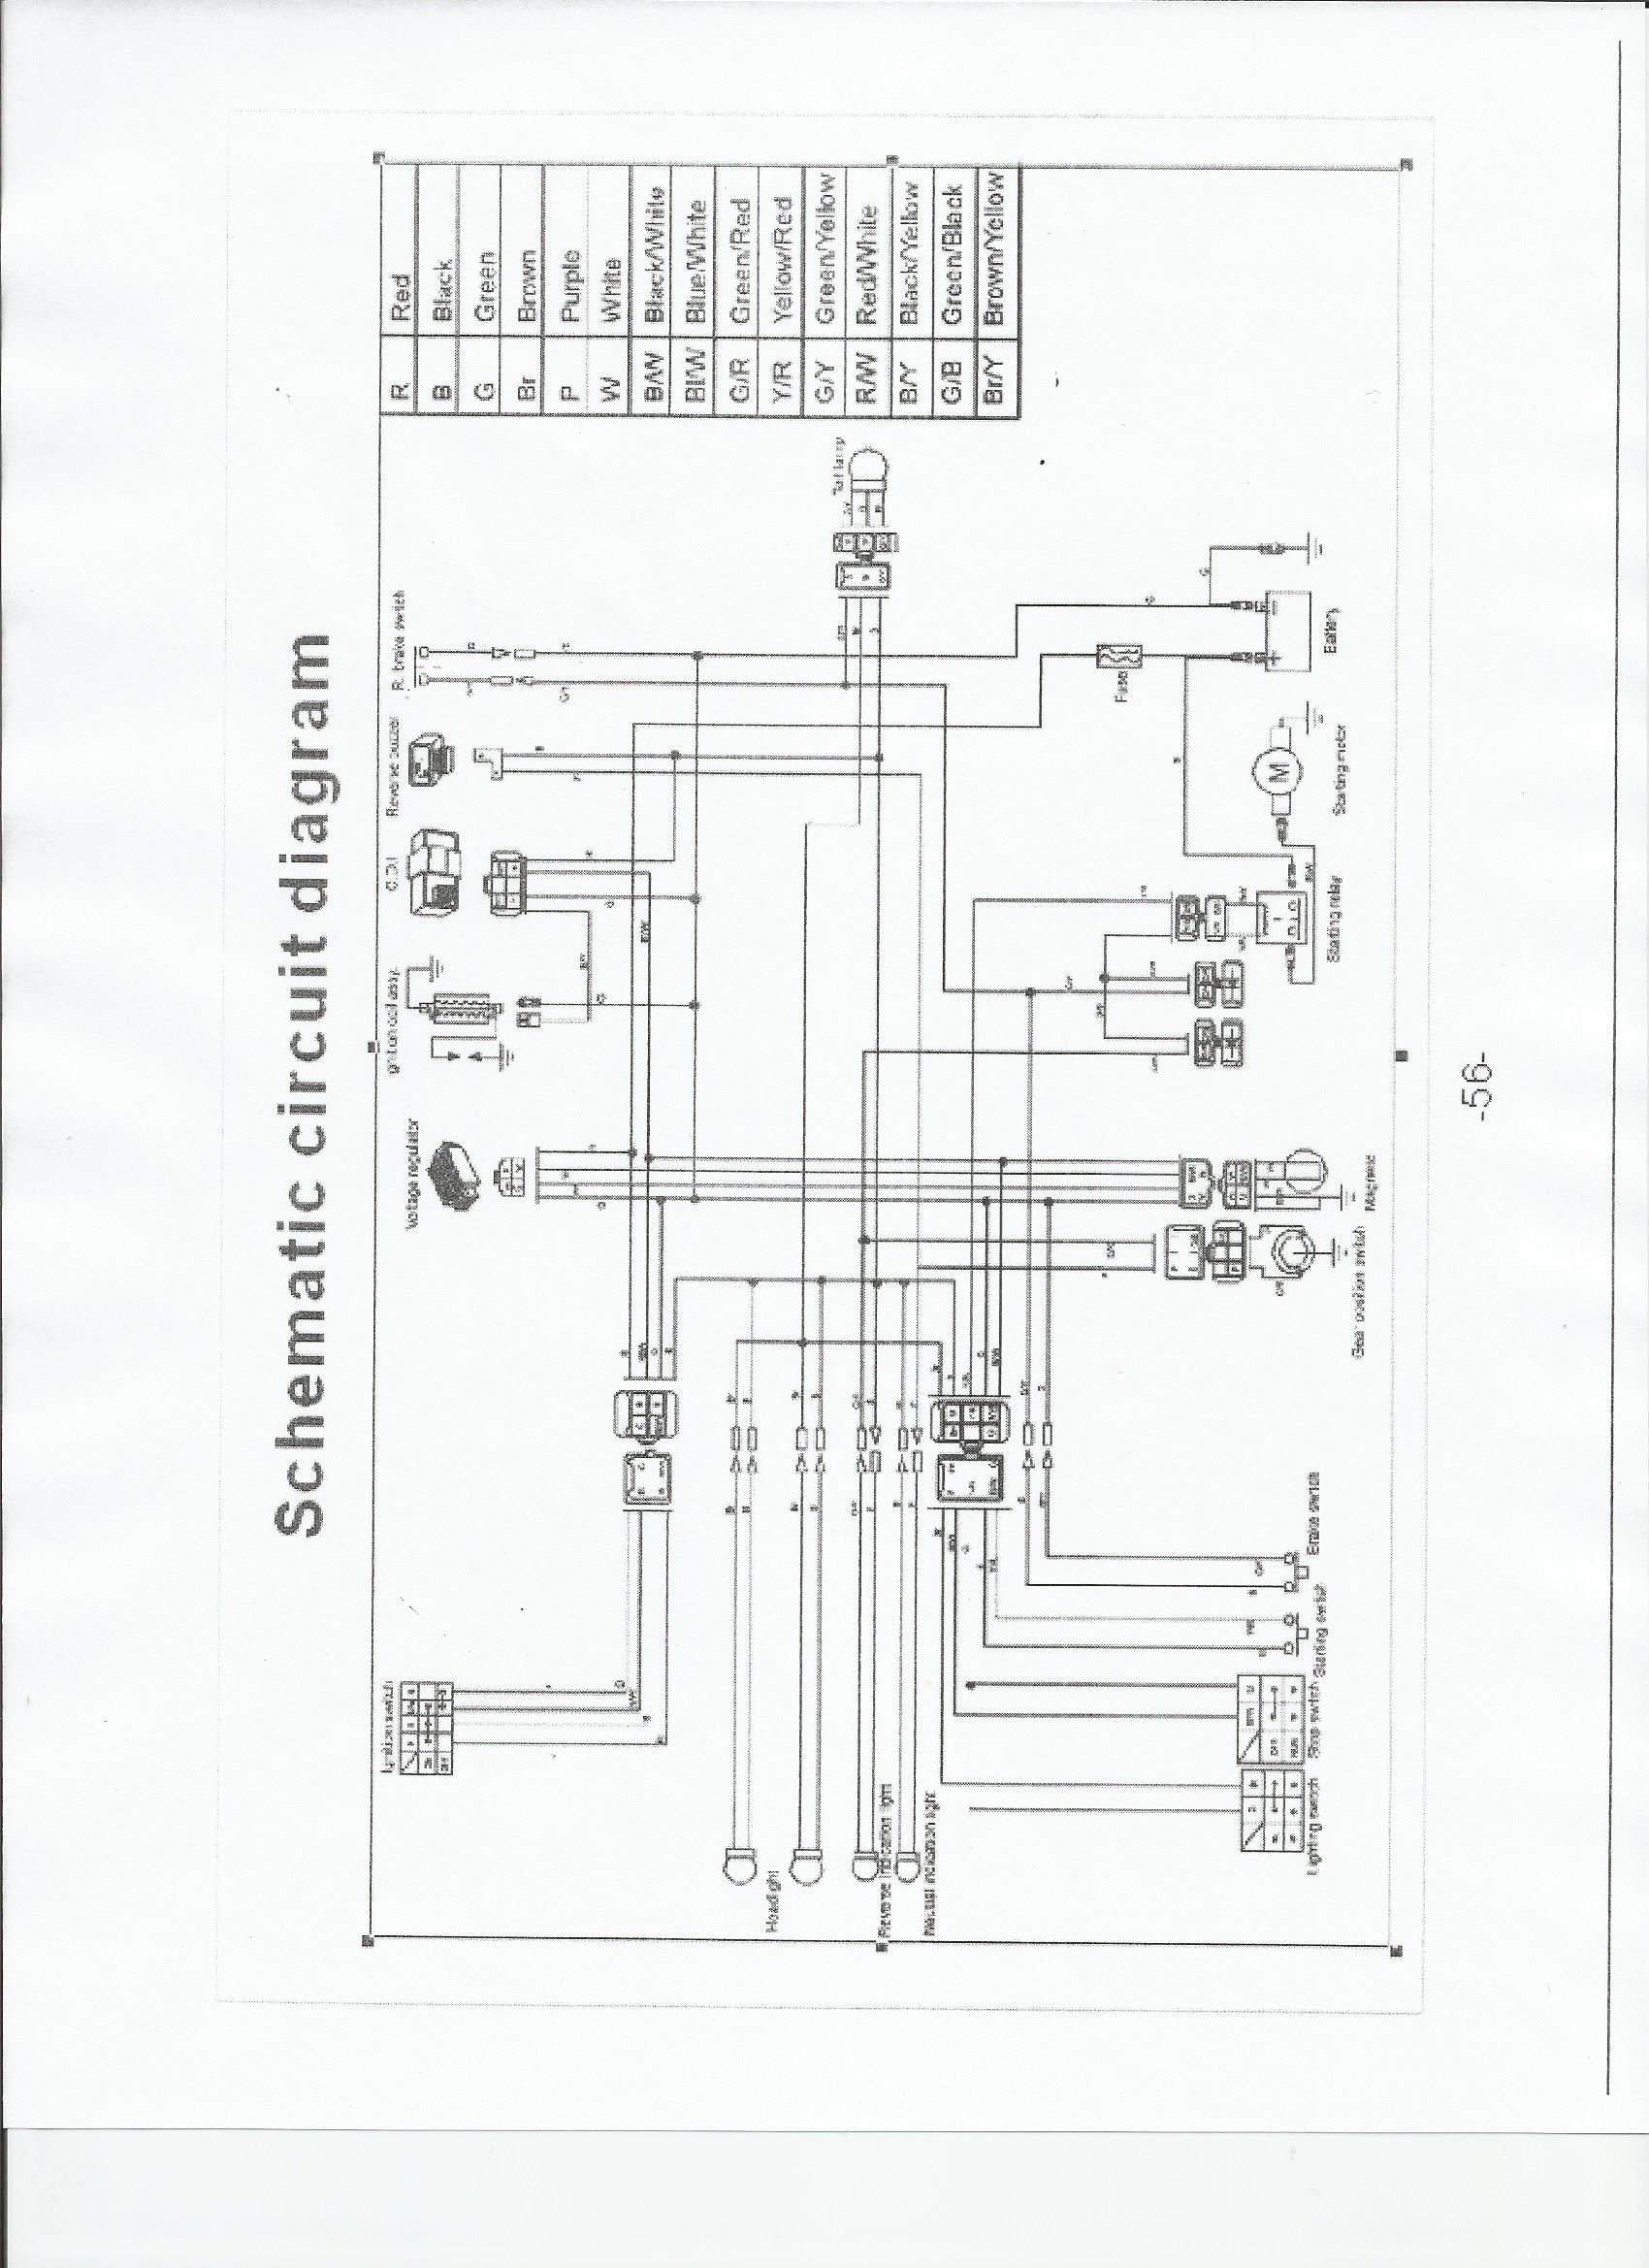 tao tao wiring schematic taotao ata 110h1 wiring diagram chinese go kart wiring diagram  at panicattacktreatment.co